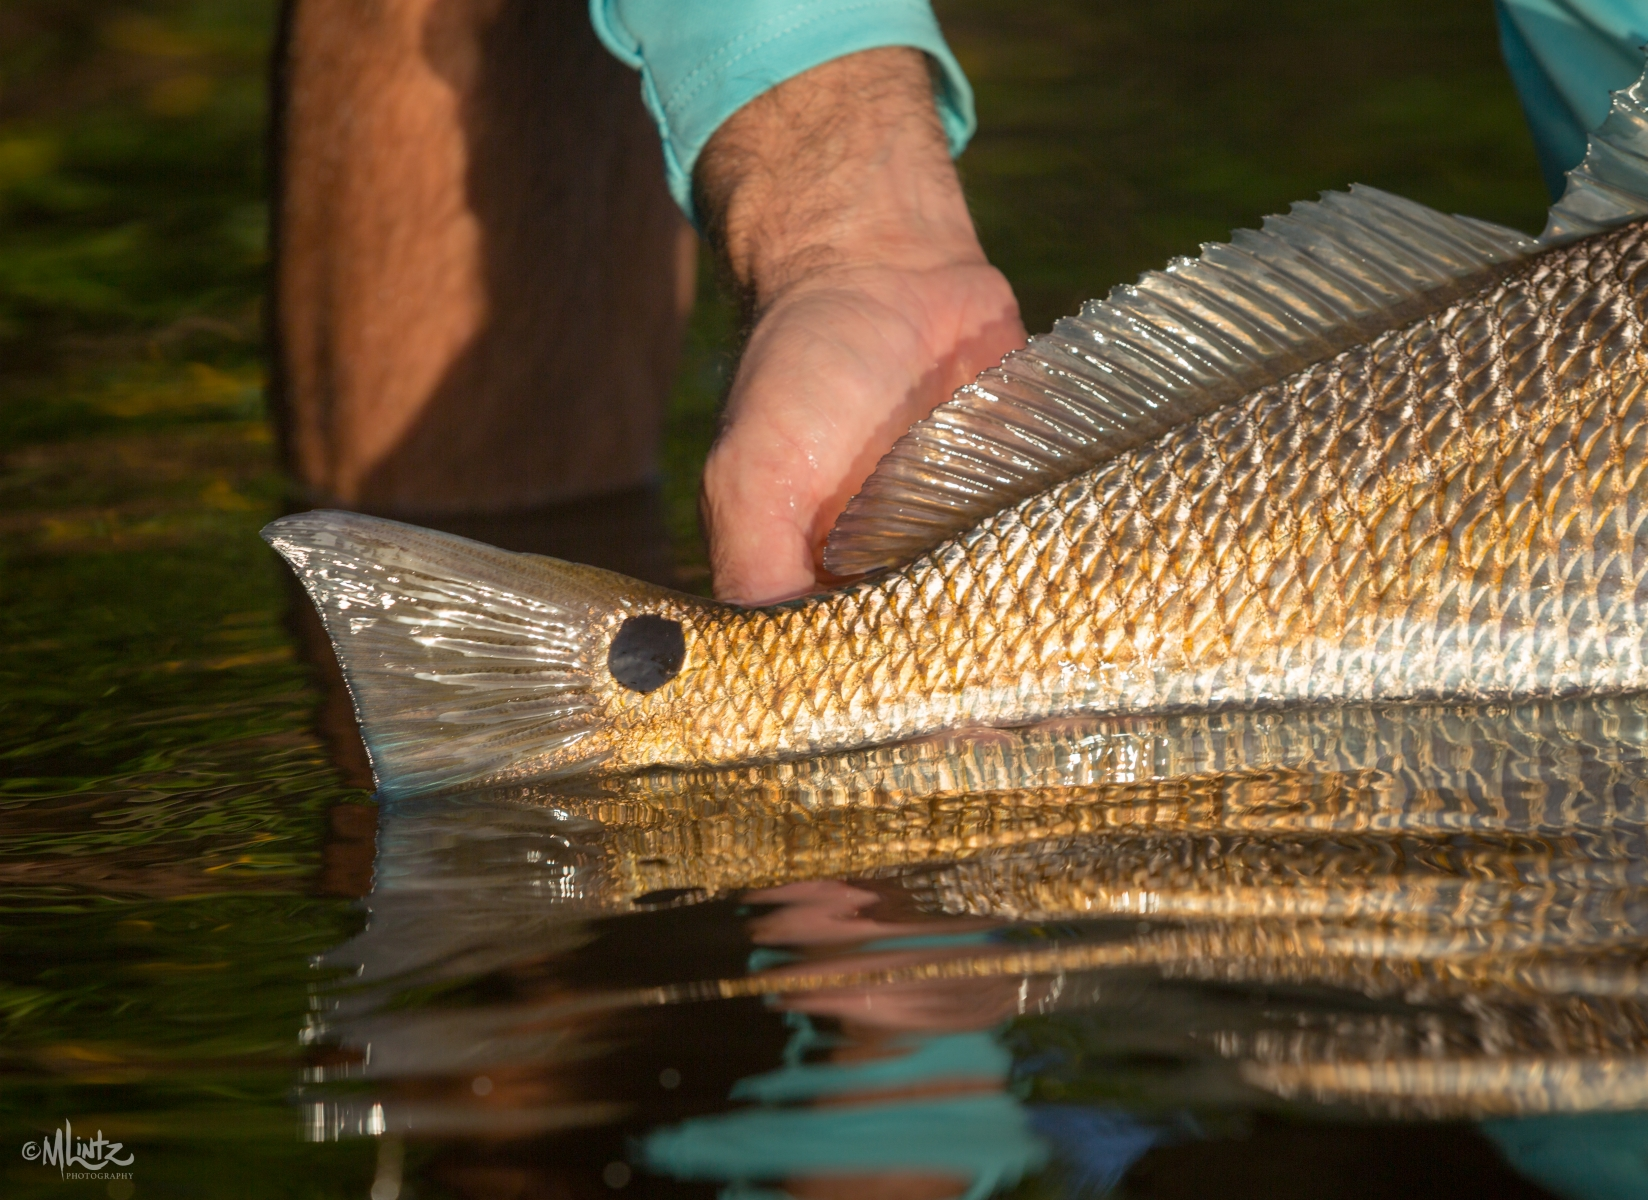 Redfish tail catching the morning light in Boca Grande, FL